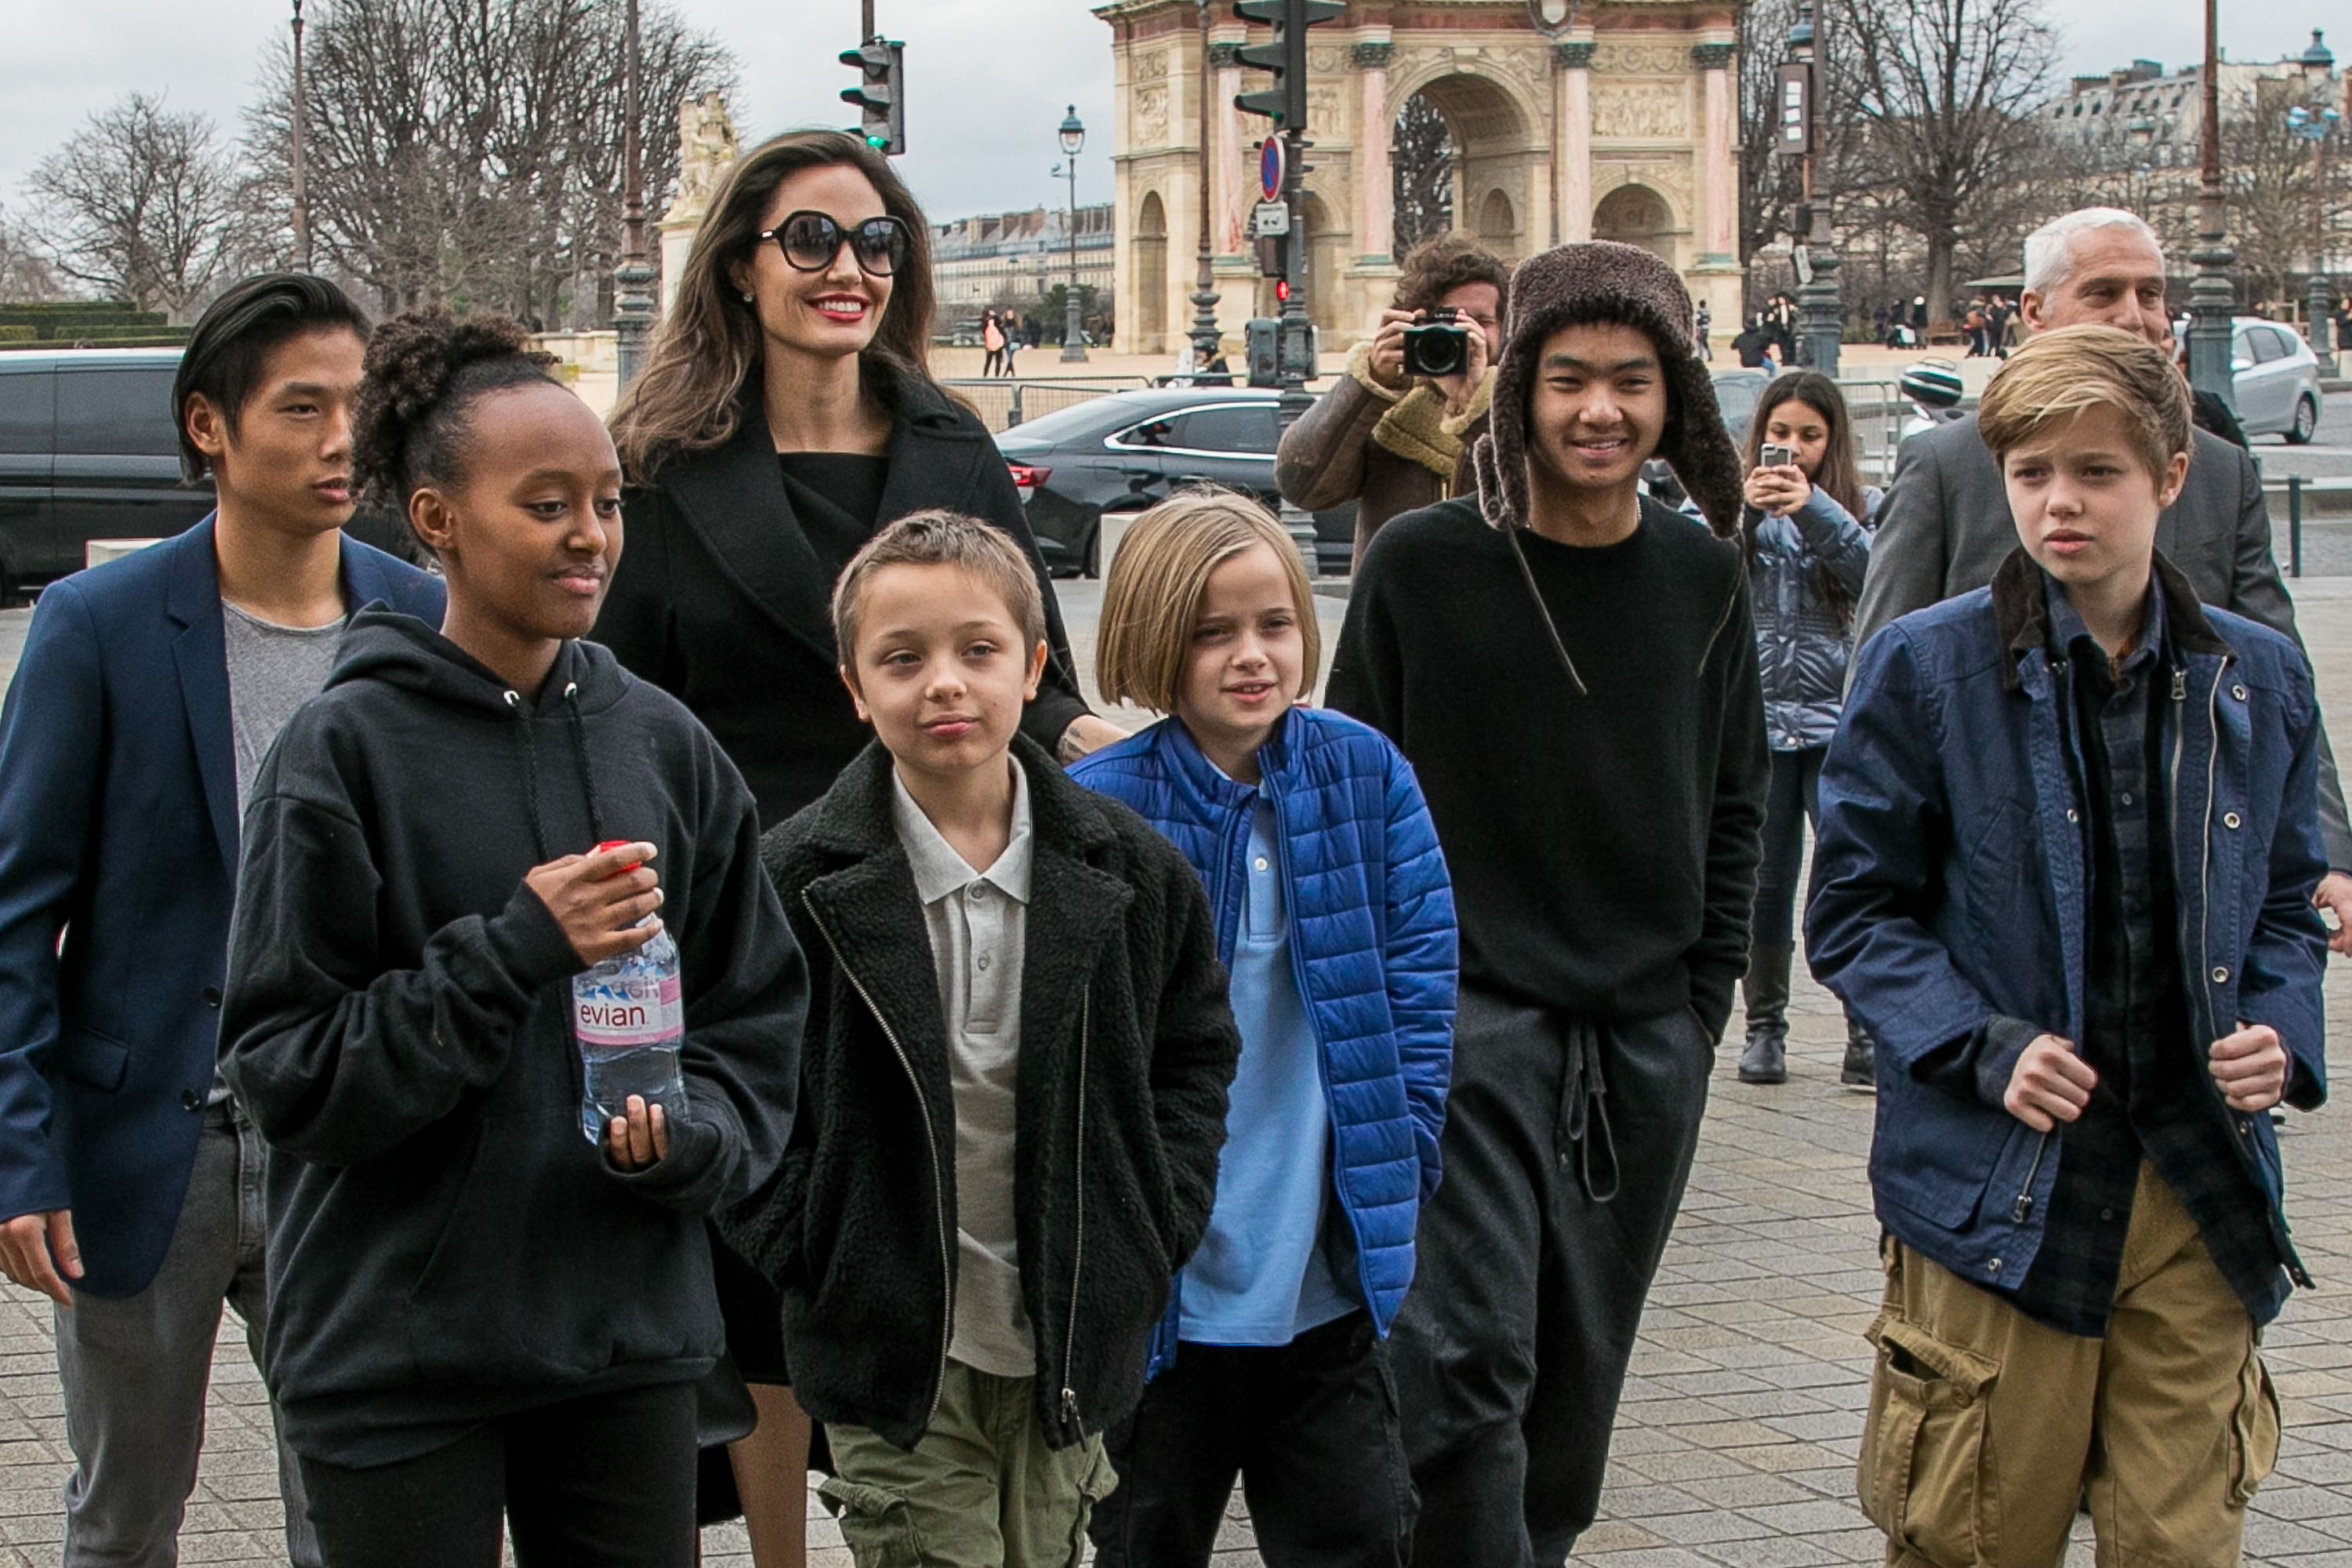 Angelina Jolie and her children Maddox, Shiloh, Vivienne, Knox, Zahara, and Pax Jolie-Pitt arriving at the Louvre museum on January 30, 2018, in Paris, France | Photo: Marc Piasecki/GC Images/Getty Images